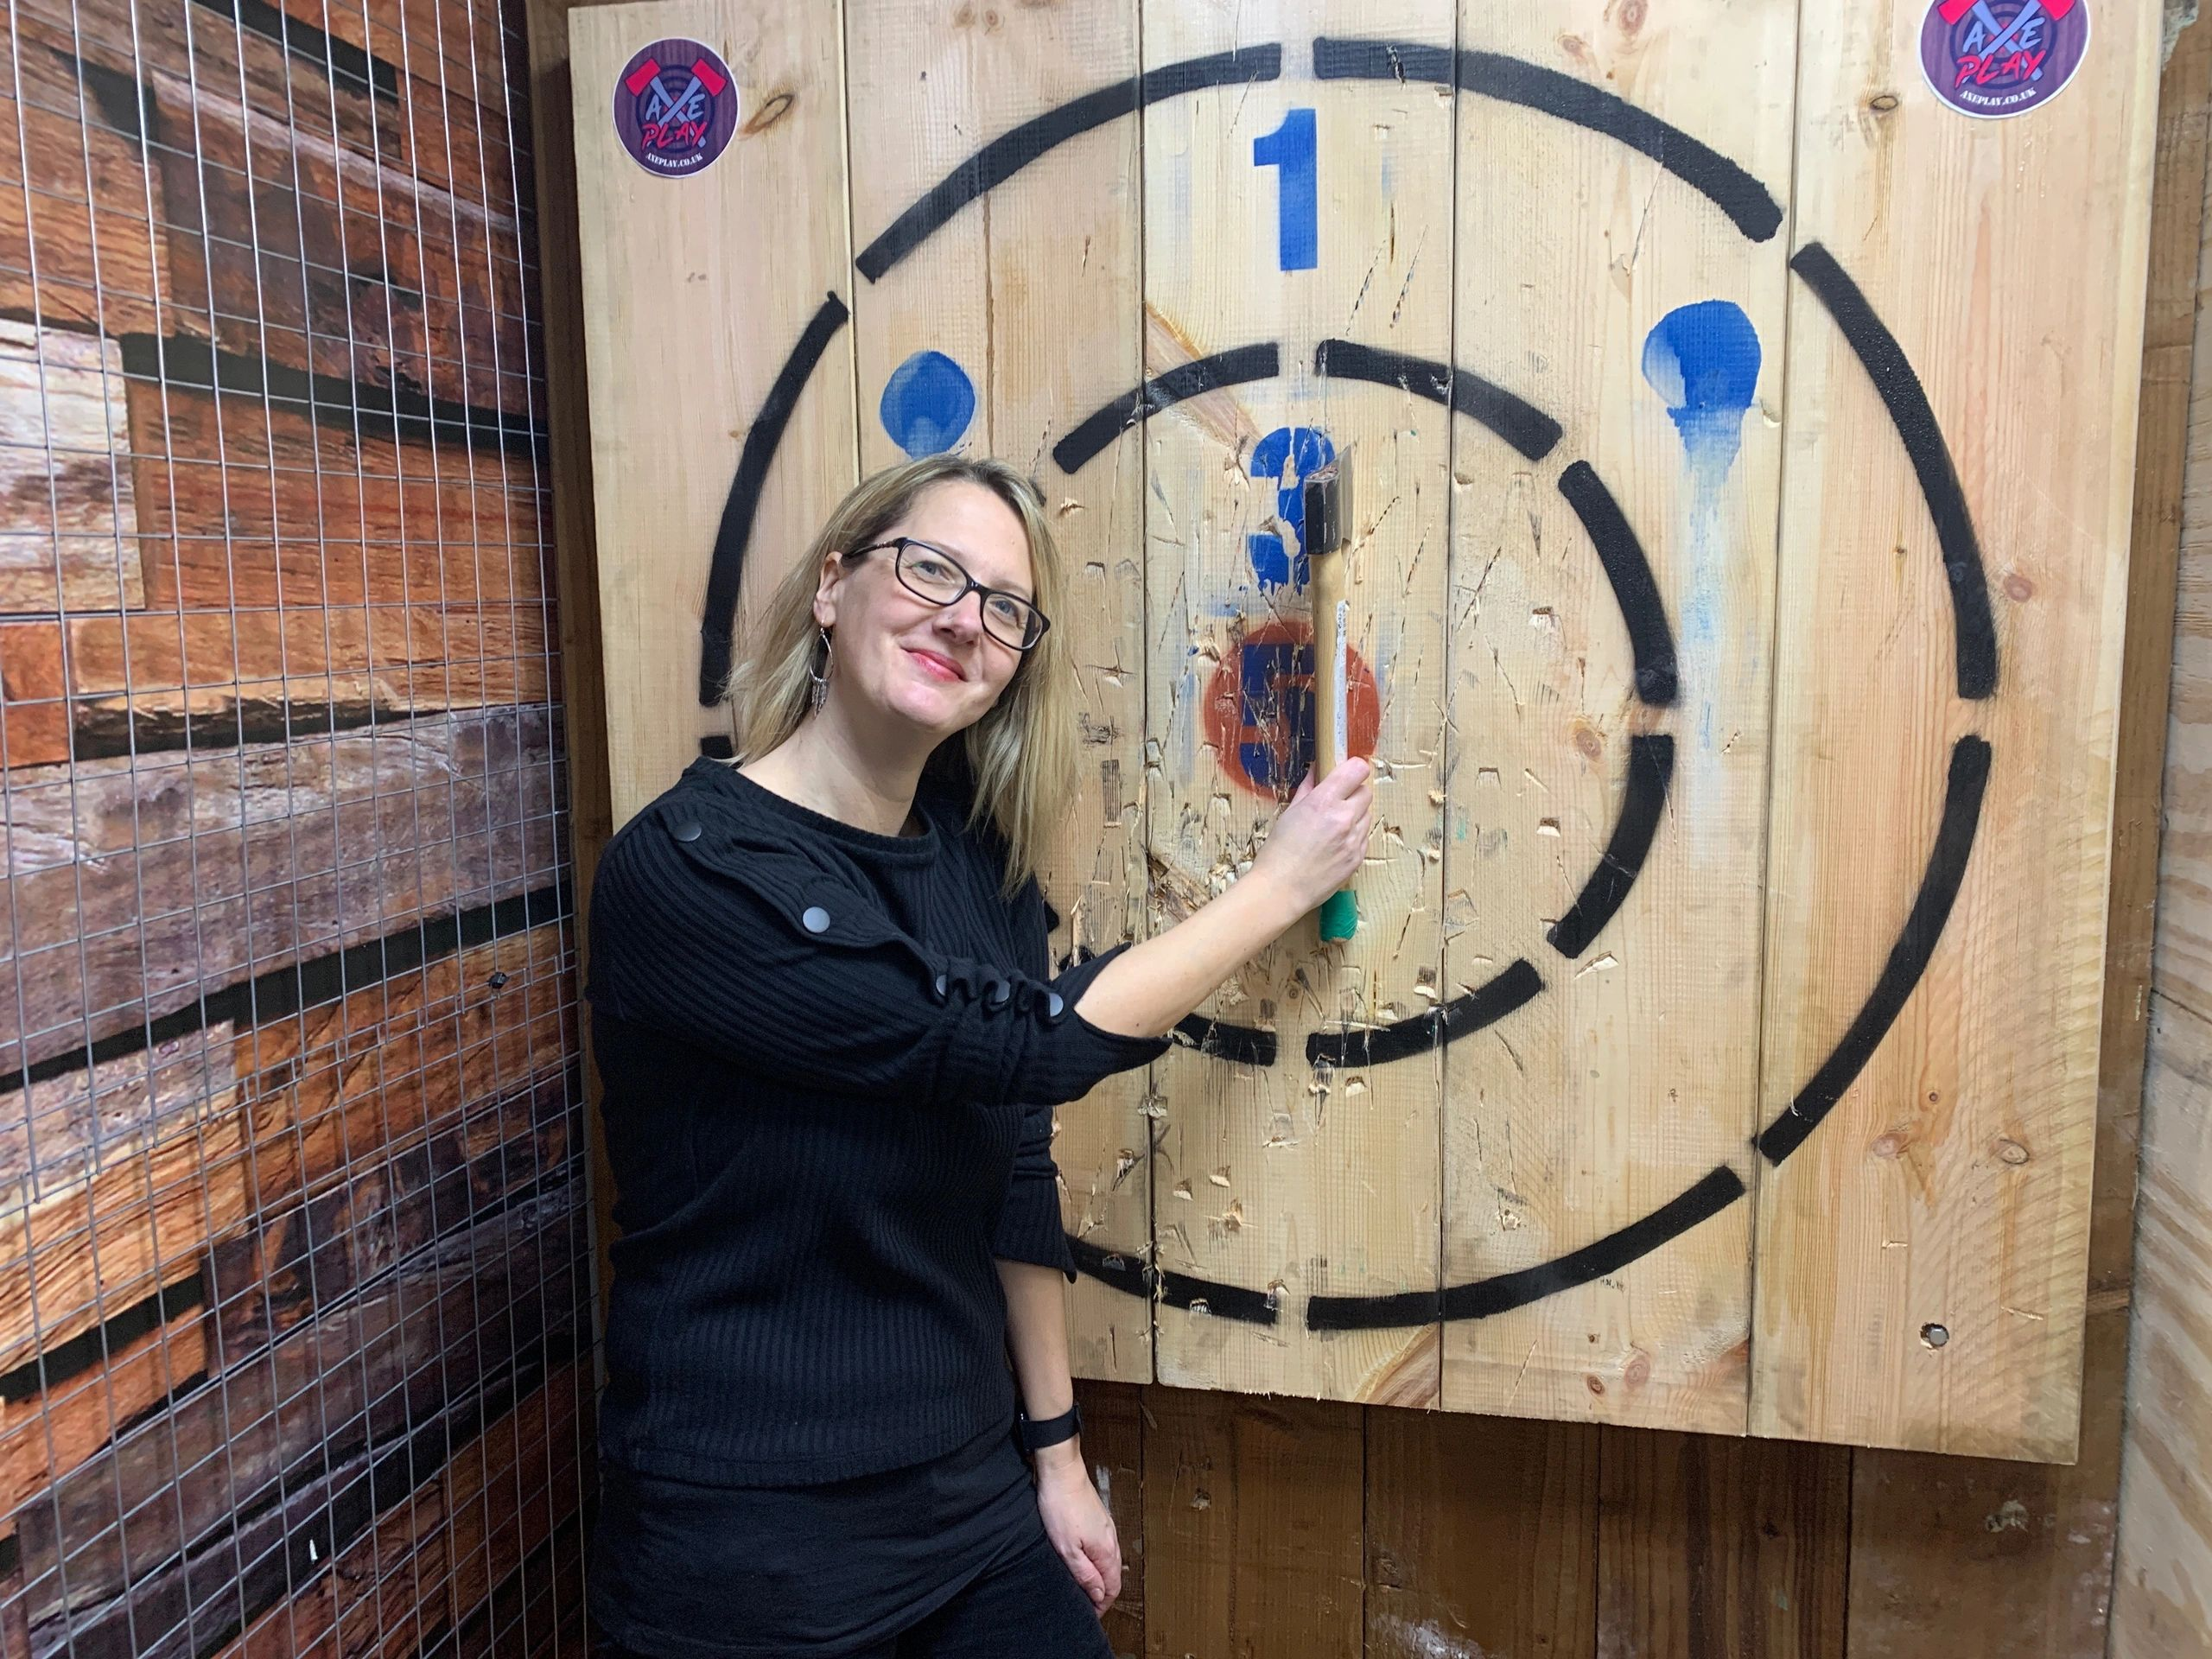 Urban indoor axe throwing in Bristol @ Axe Play in Gloucester